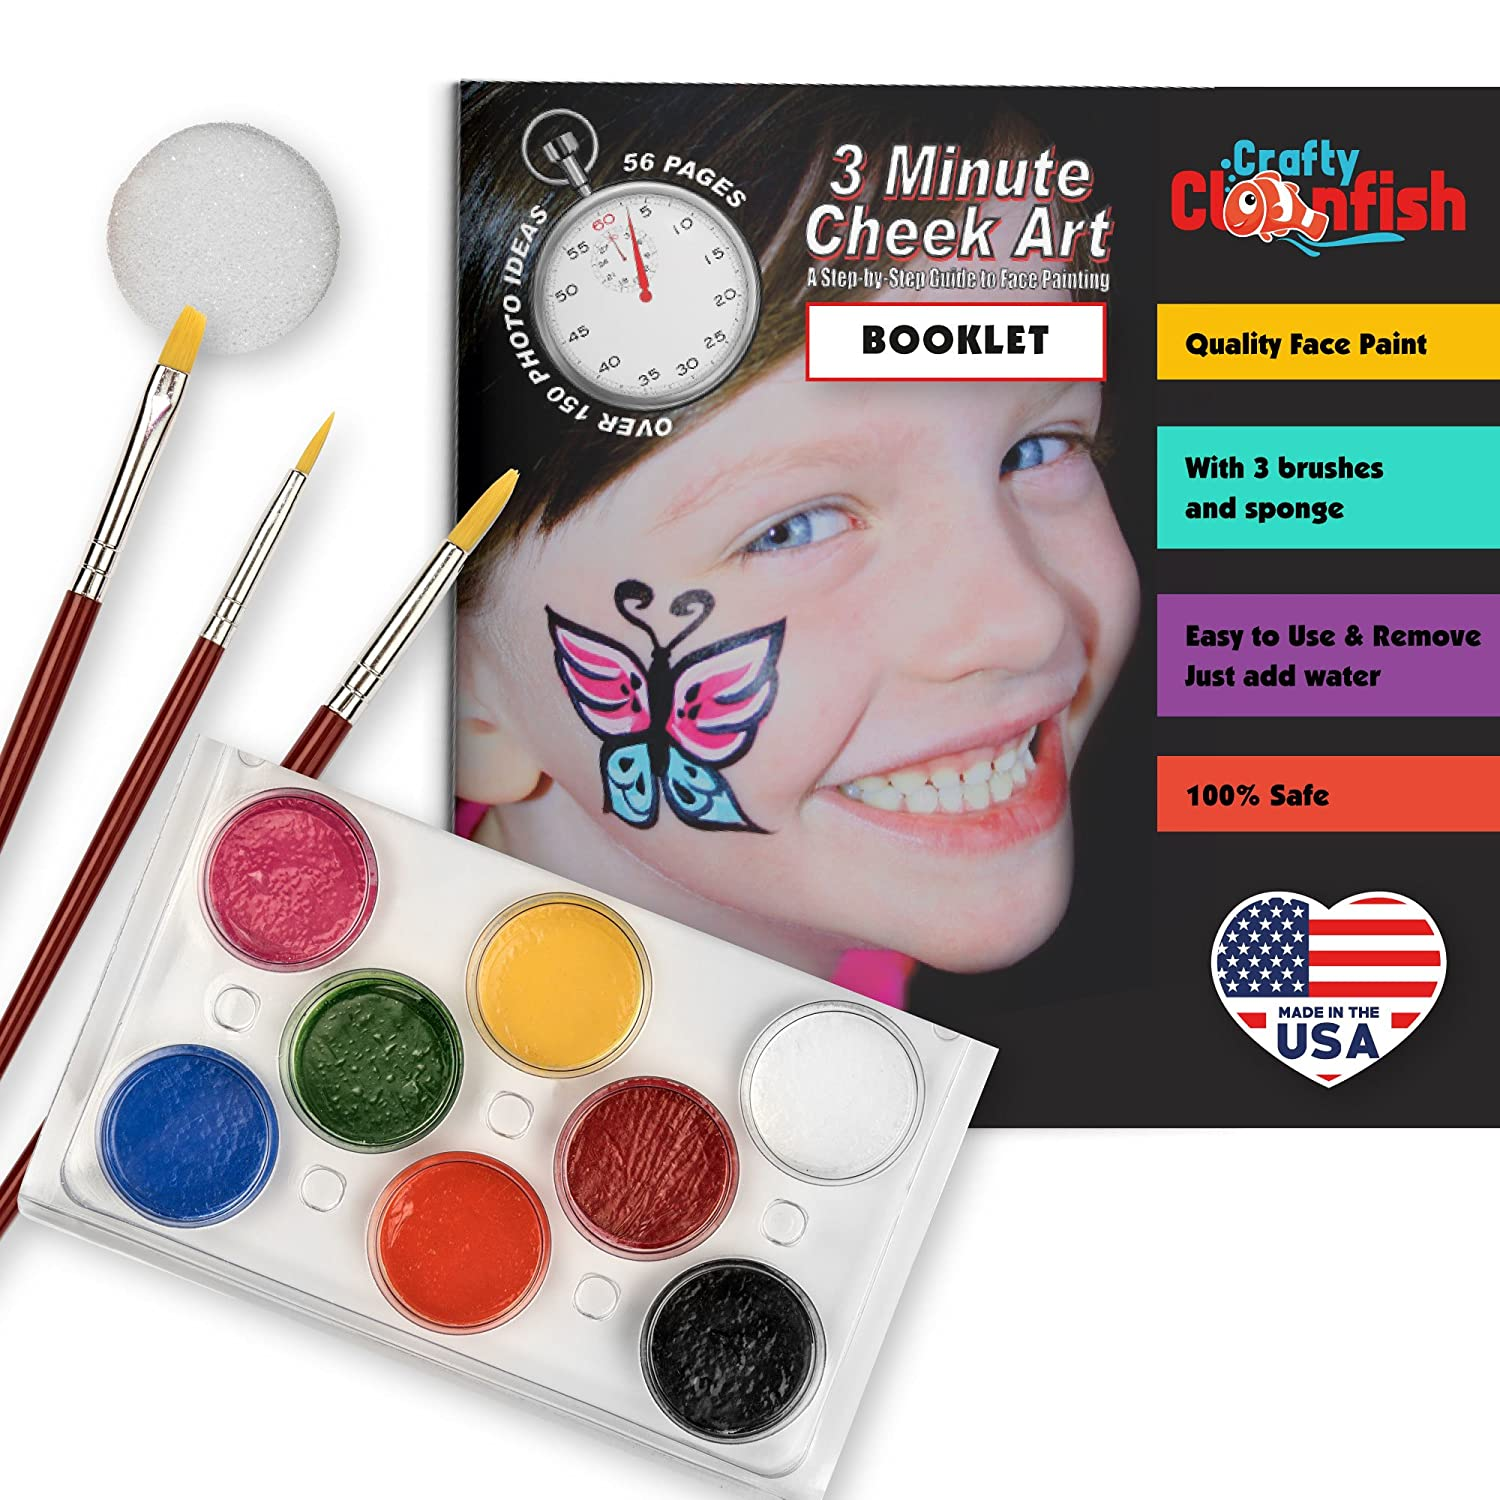 Amazon.com: Face Painting Kit and Book - 56 Page Face Paint Book Complete  Kit - Create Amazing Cheek Art - Non Toxic For Sensitive Skin Easy & Safe  To Use 3 ...